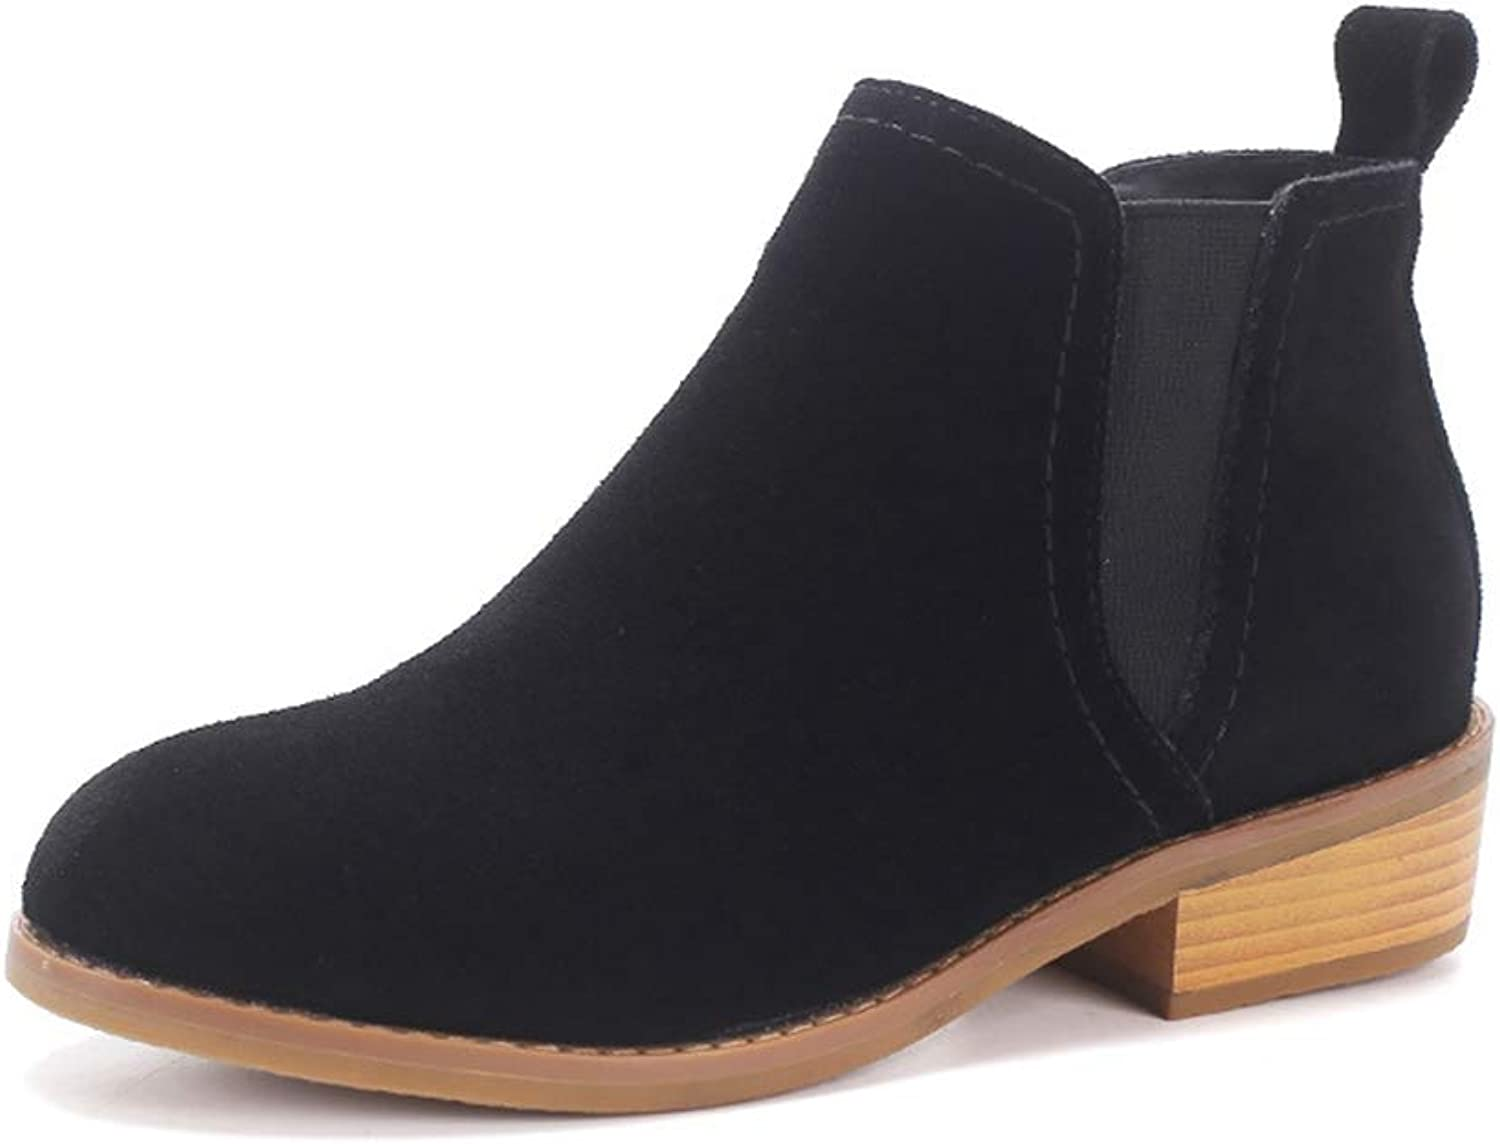 GIY Women's Suede Ankle Booties Winter Classic Pump Short Ankle Boots Causal Closed Toe Stacked Heel Chelsea Boots